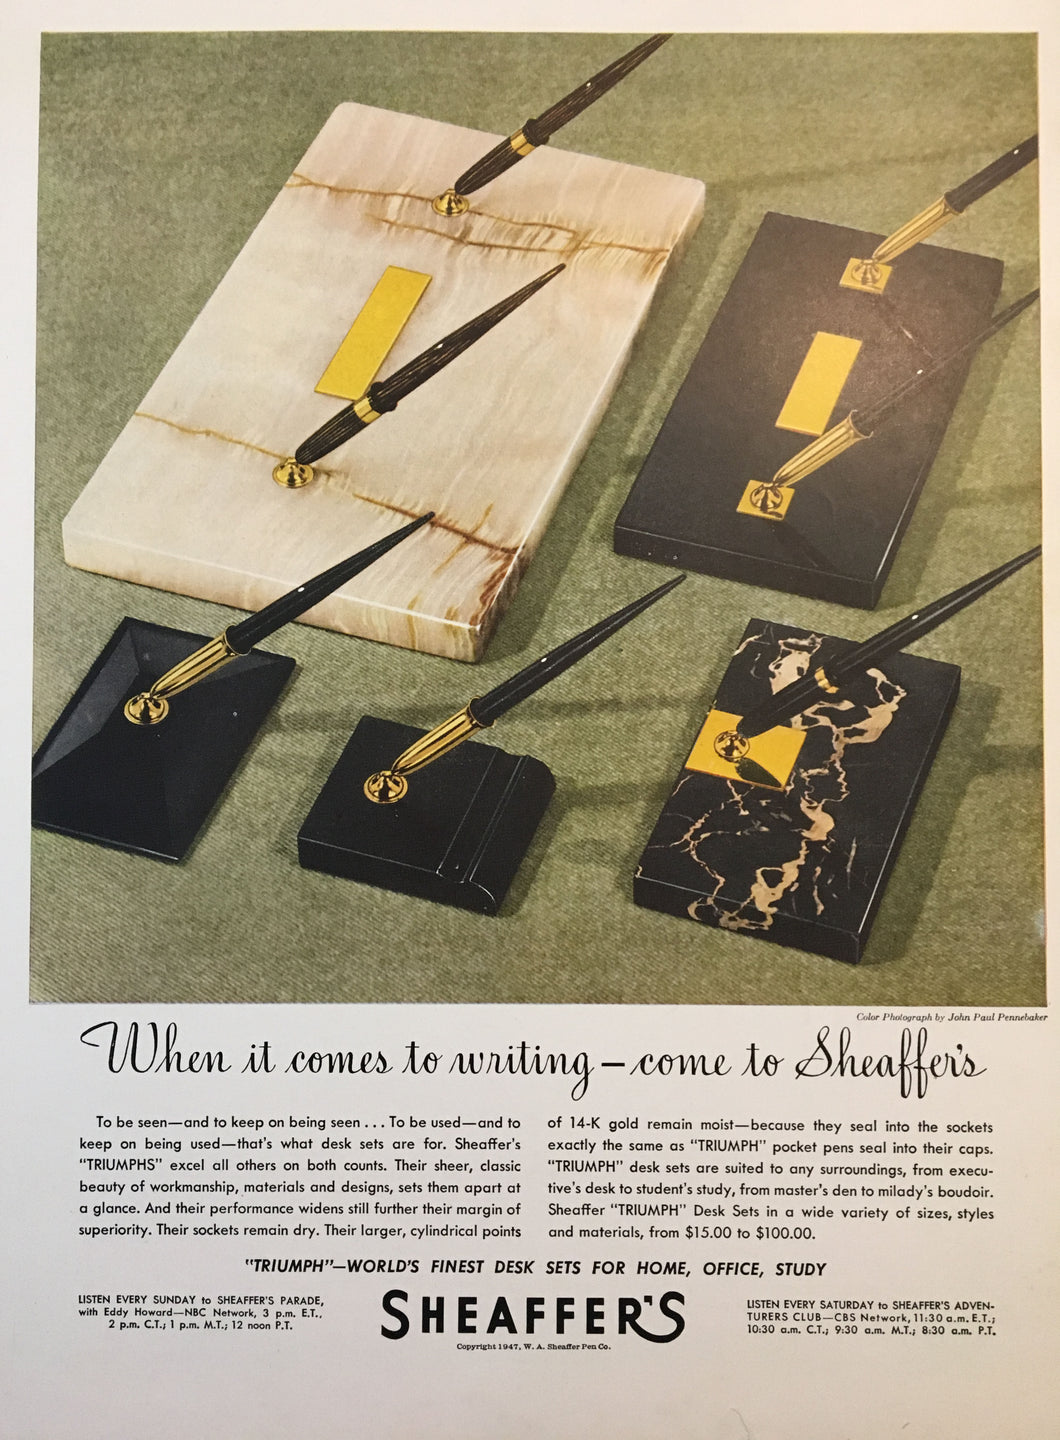 Sheaffer's Desk sets, Life Magazine November 17, 1947